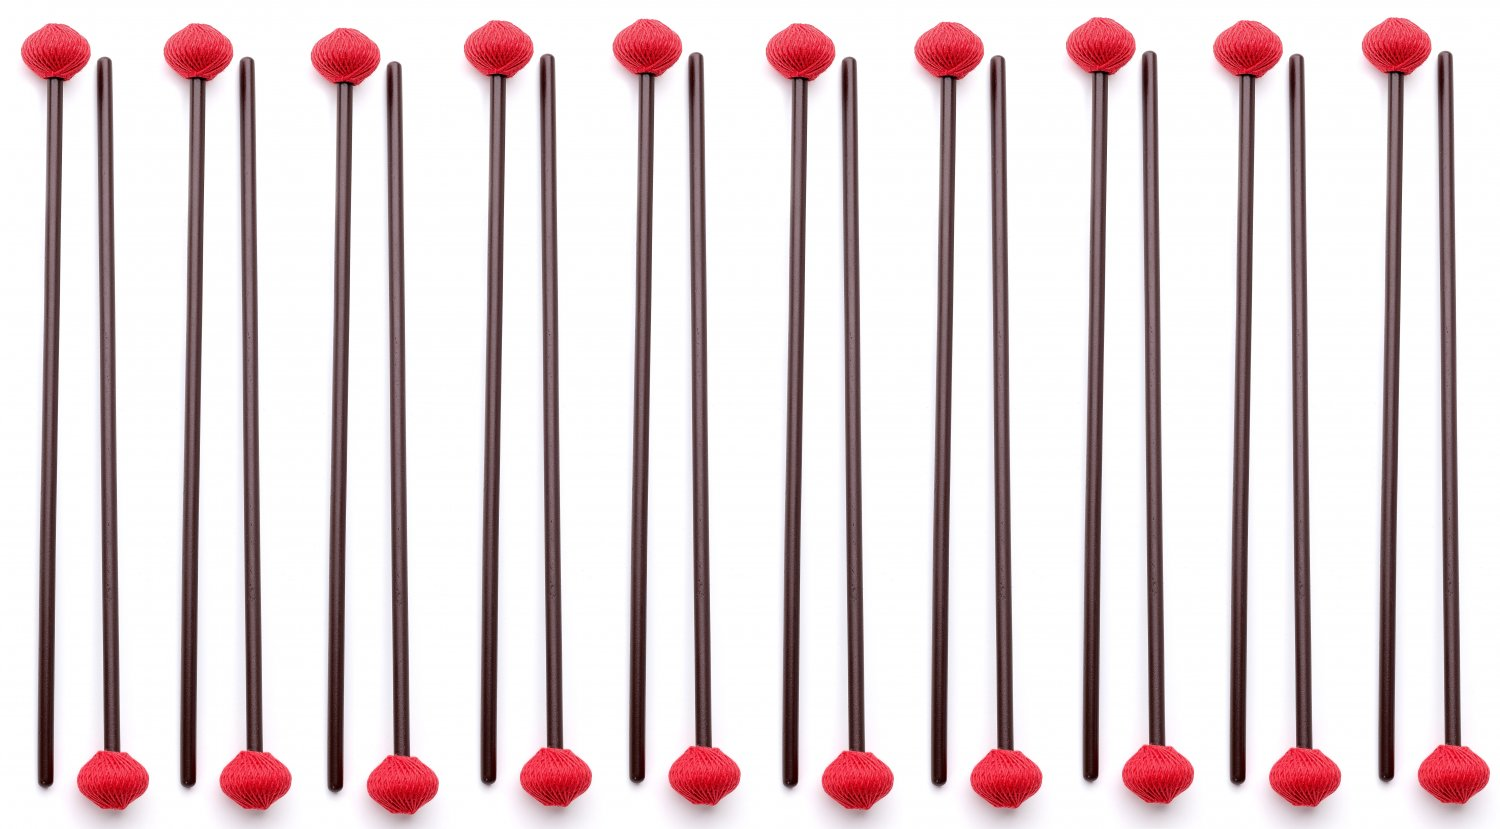 10 Pairs of Hard Marimba Mallets made in EU - ASHKATAN STUDENT SERIES S90 - Maple Handle, Red Yarn